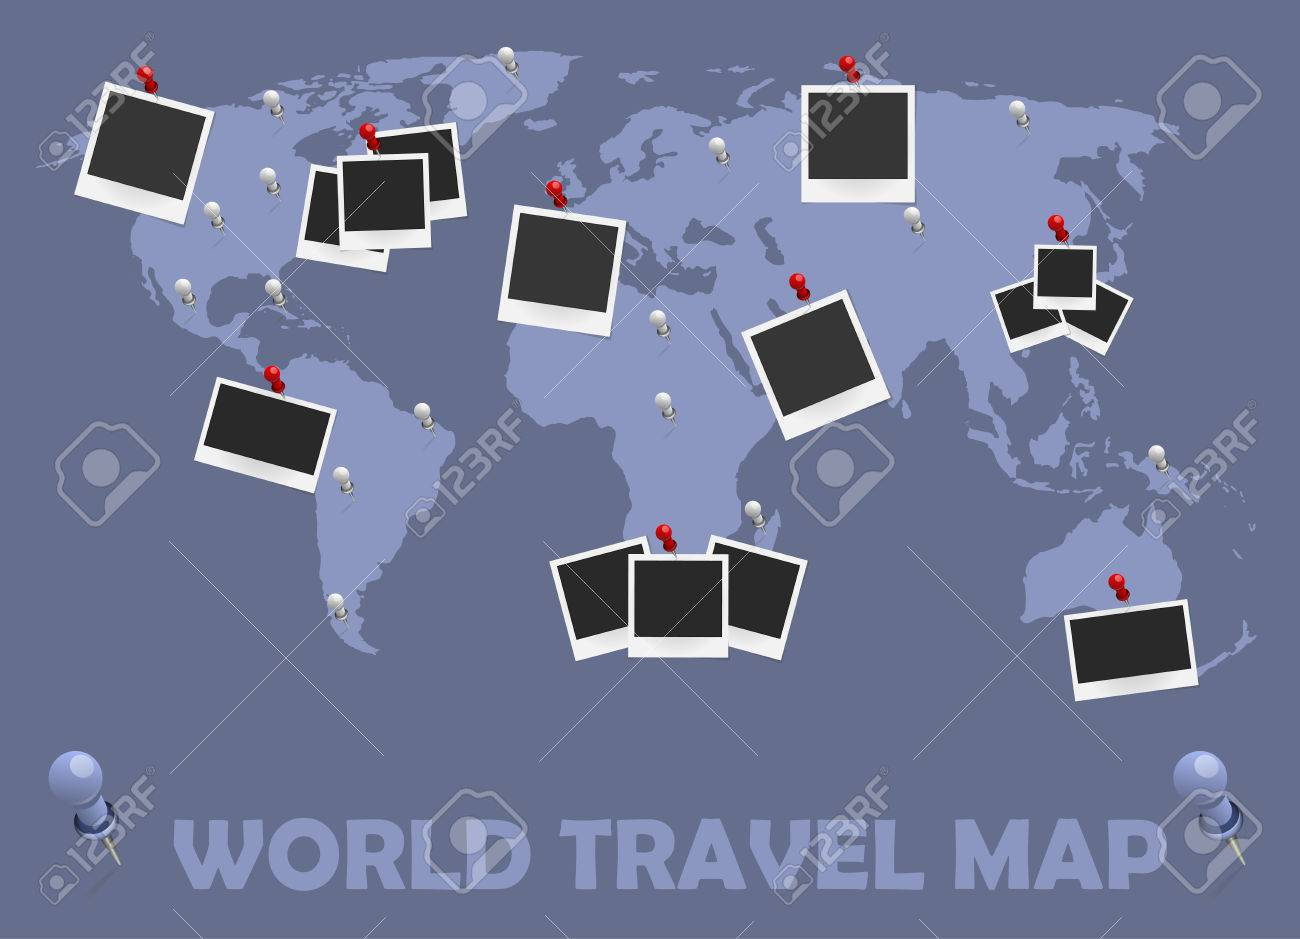 World Travel Map With Photo Frames And Pins Journey Concept - World travel map with pins and frame